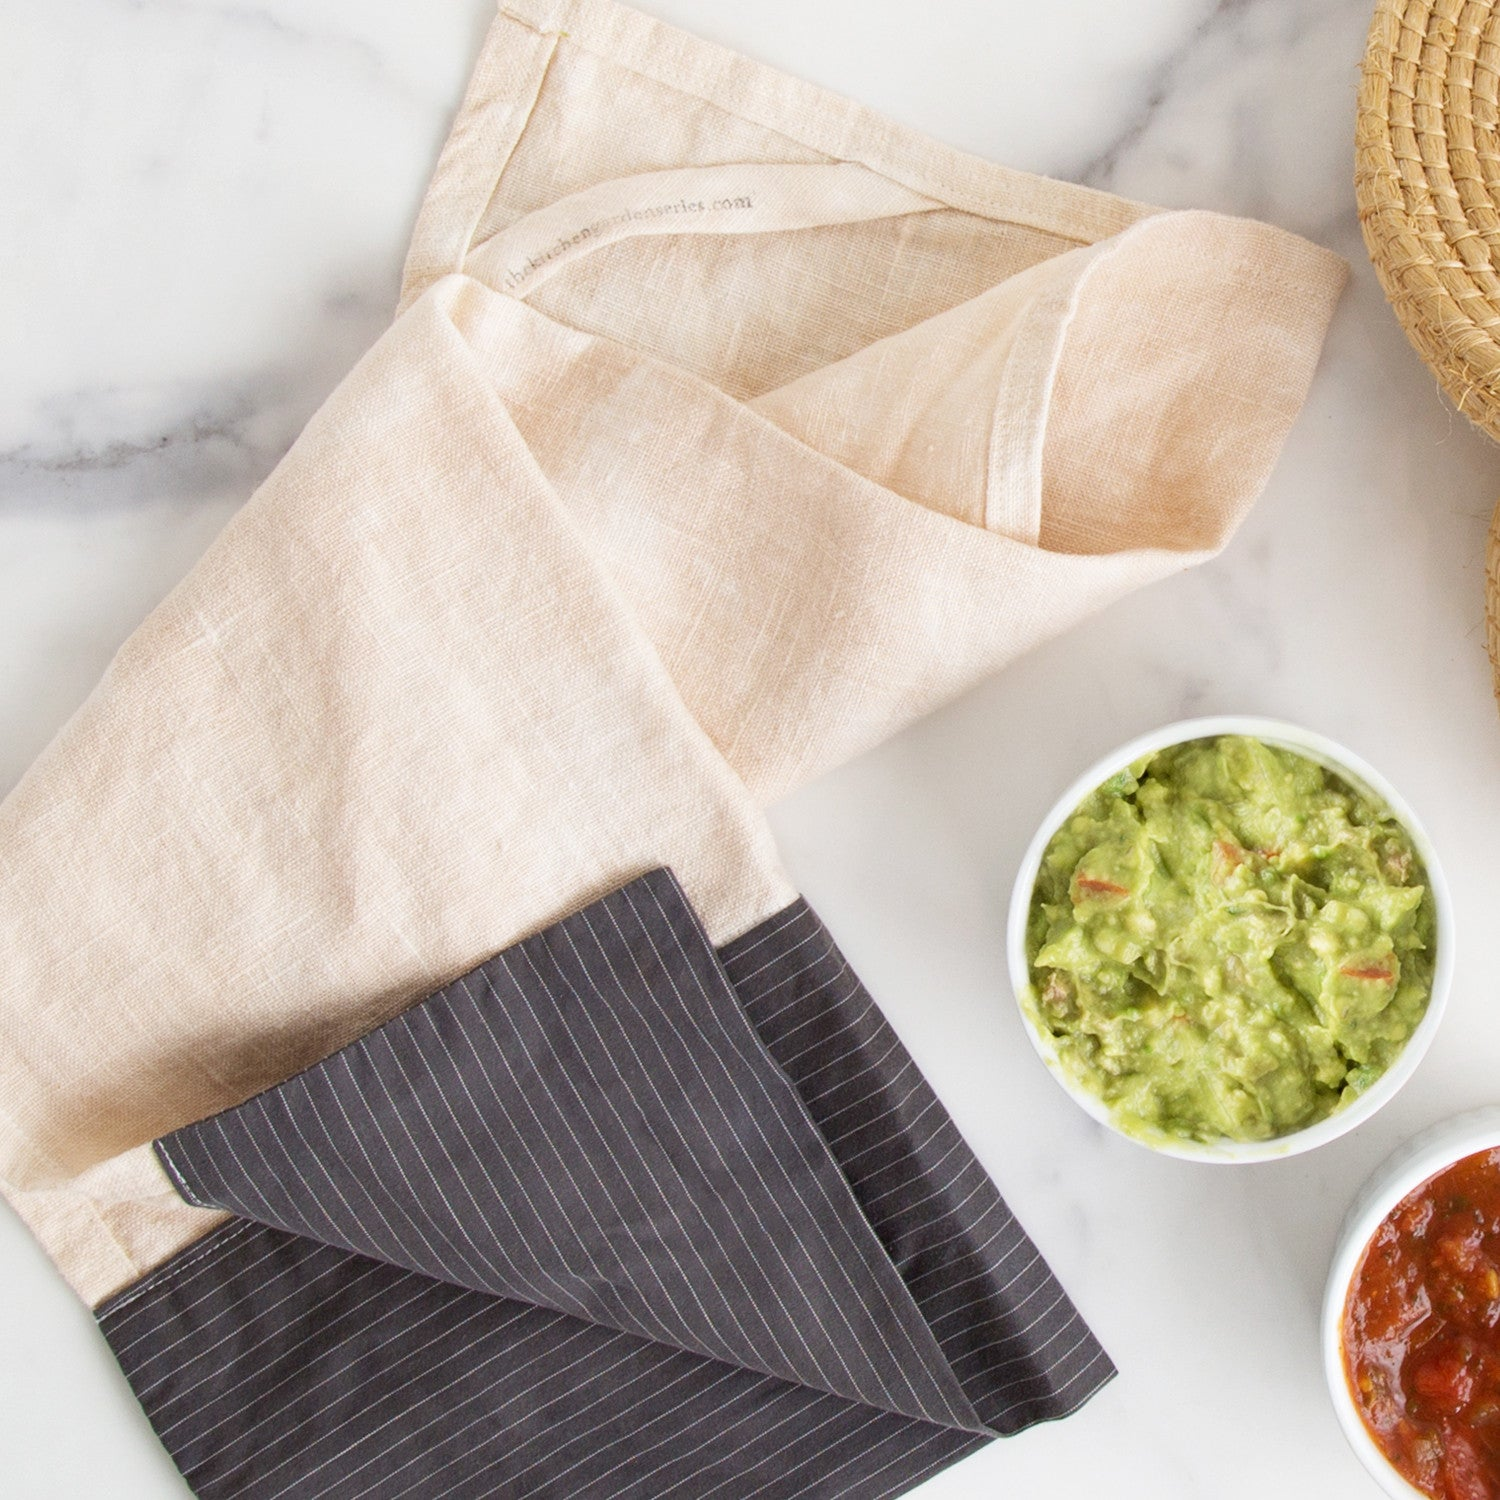 shirtsleeve tea towel with linen sleeve detail